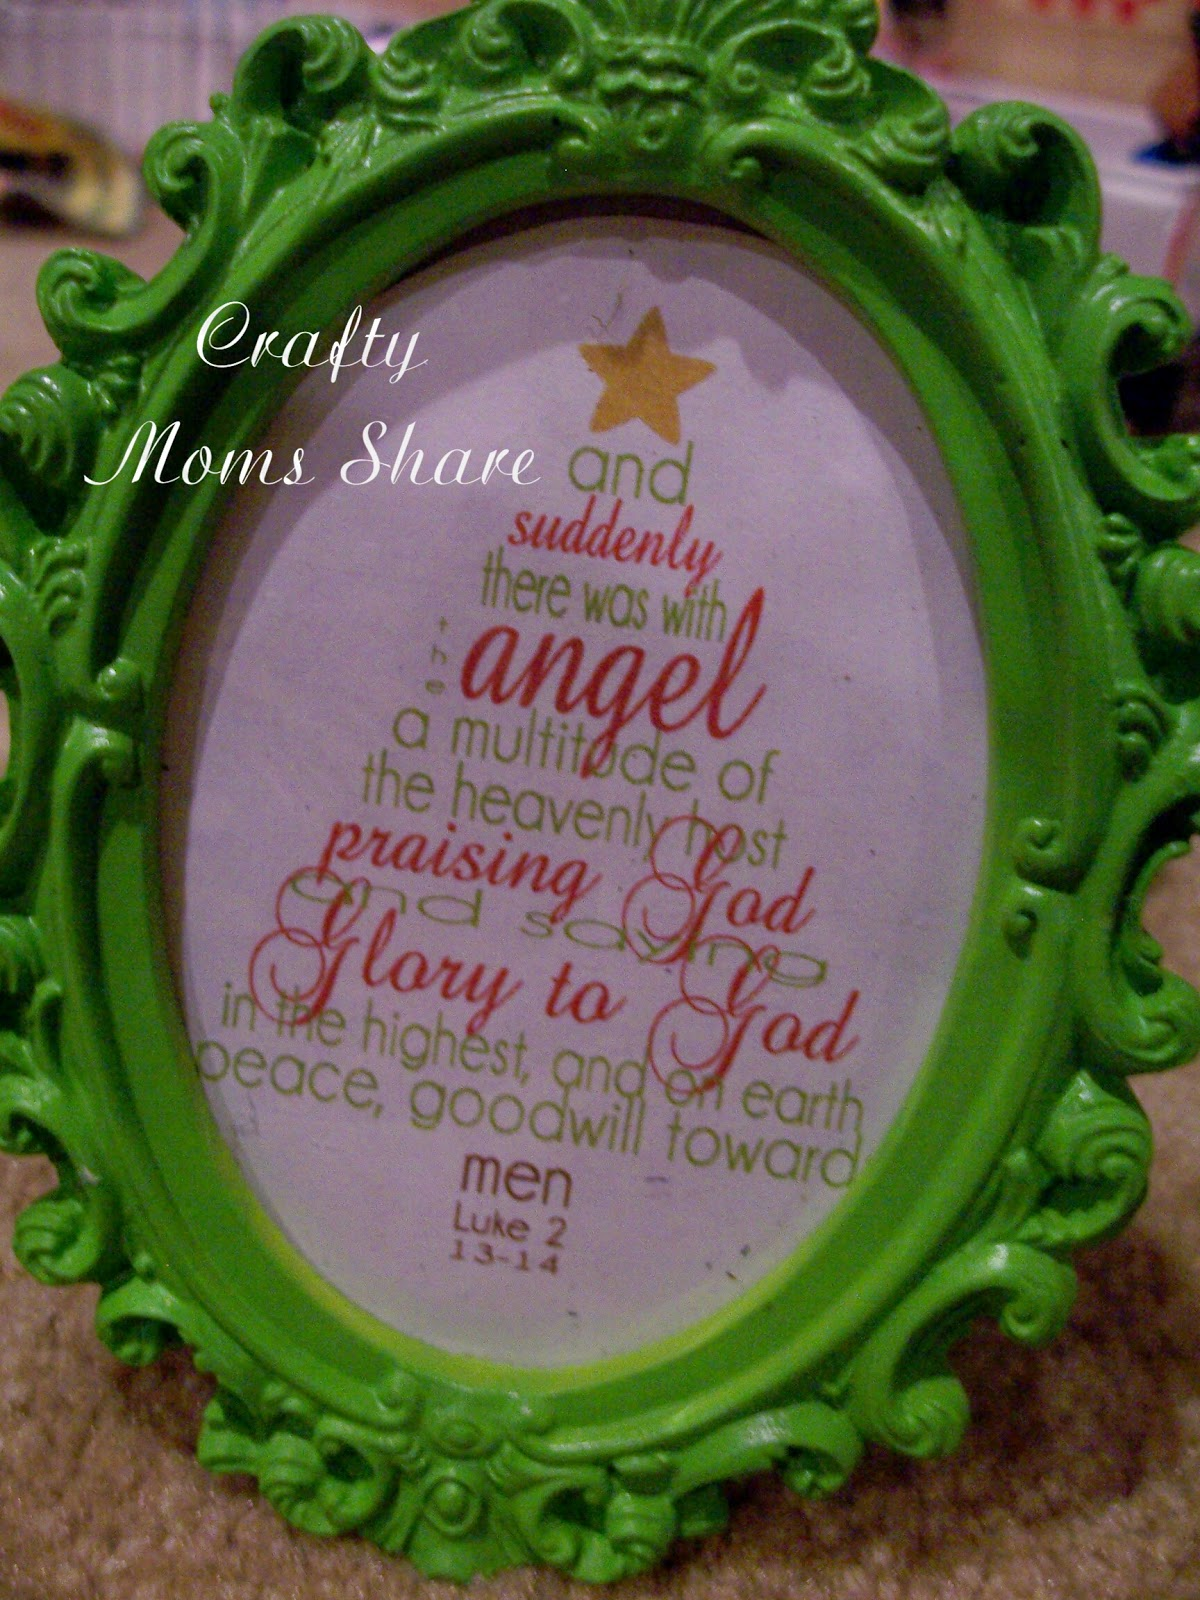 Crafty moms share focus on the nativity i put them in little frames i bought at michaels last year i also used one from simply klassic home which is a scripture verse jeuxipadfo Image collections